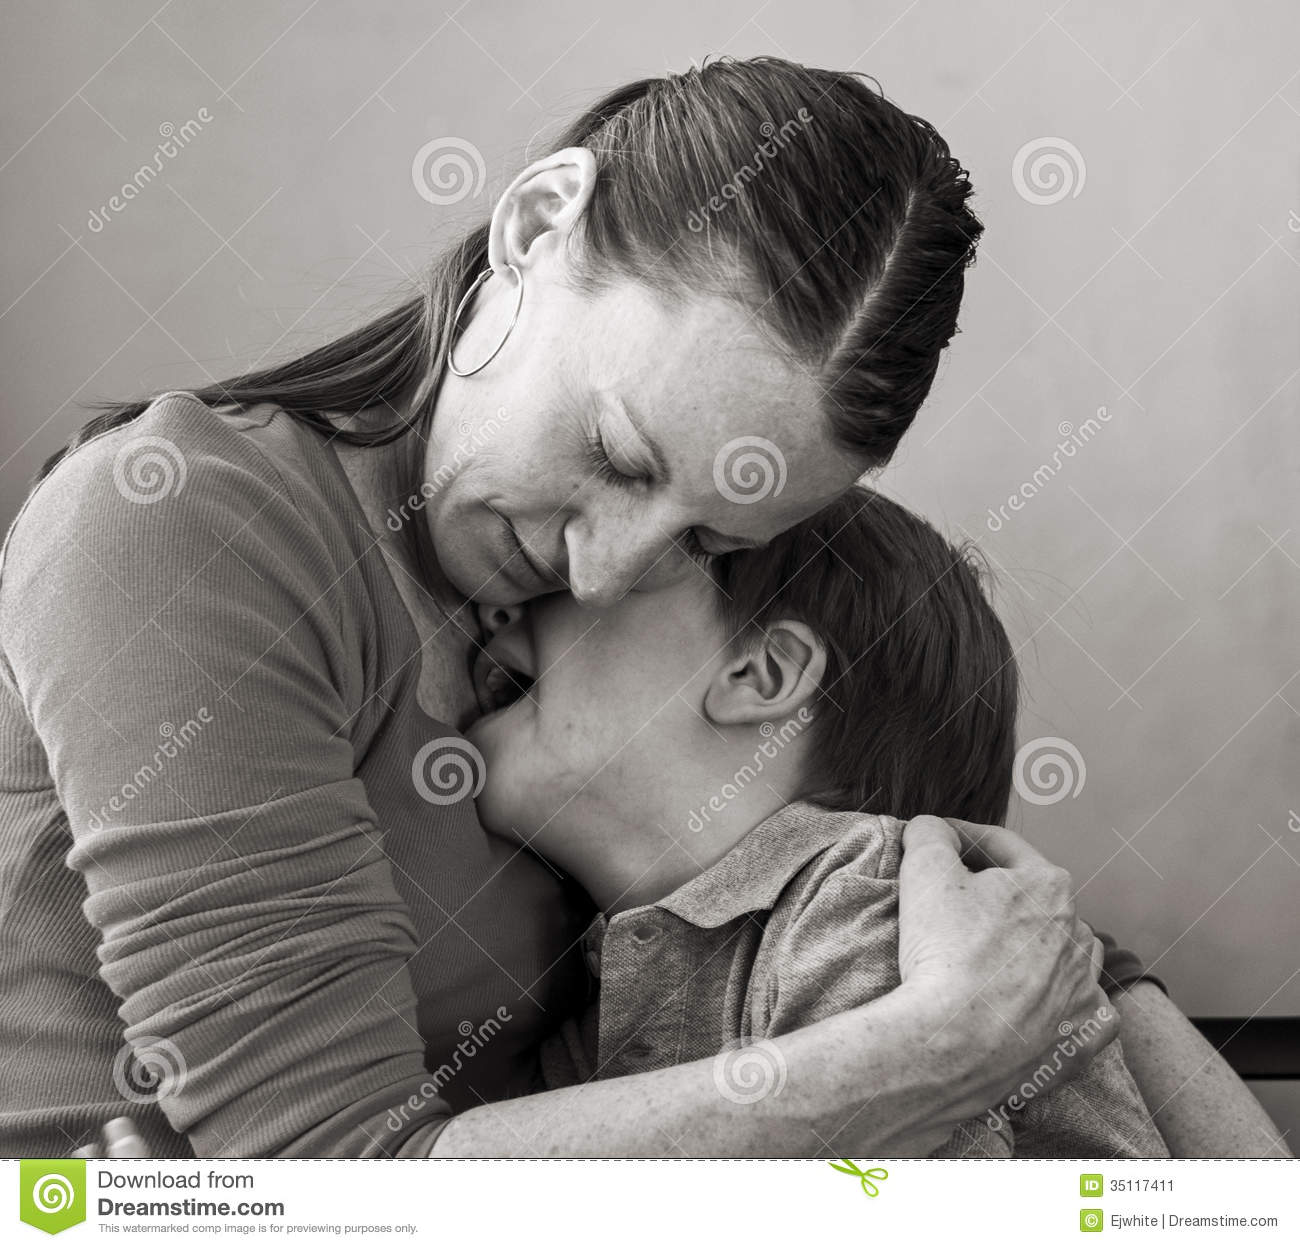 Crying mom creampied by son